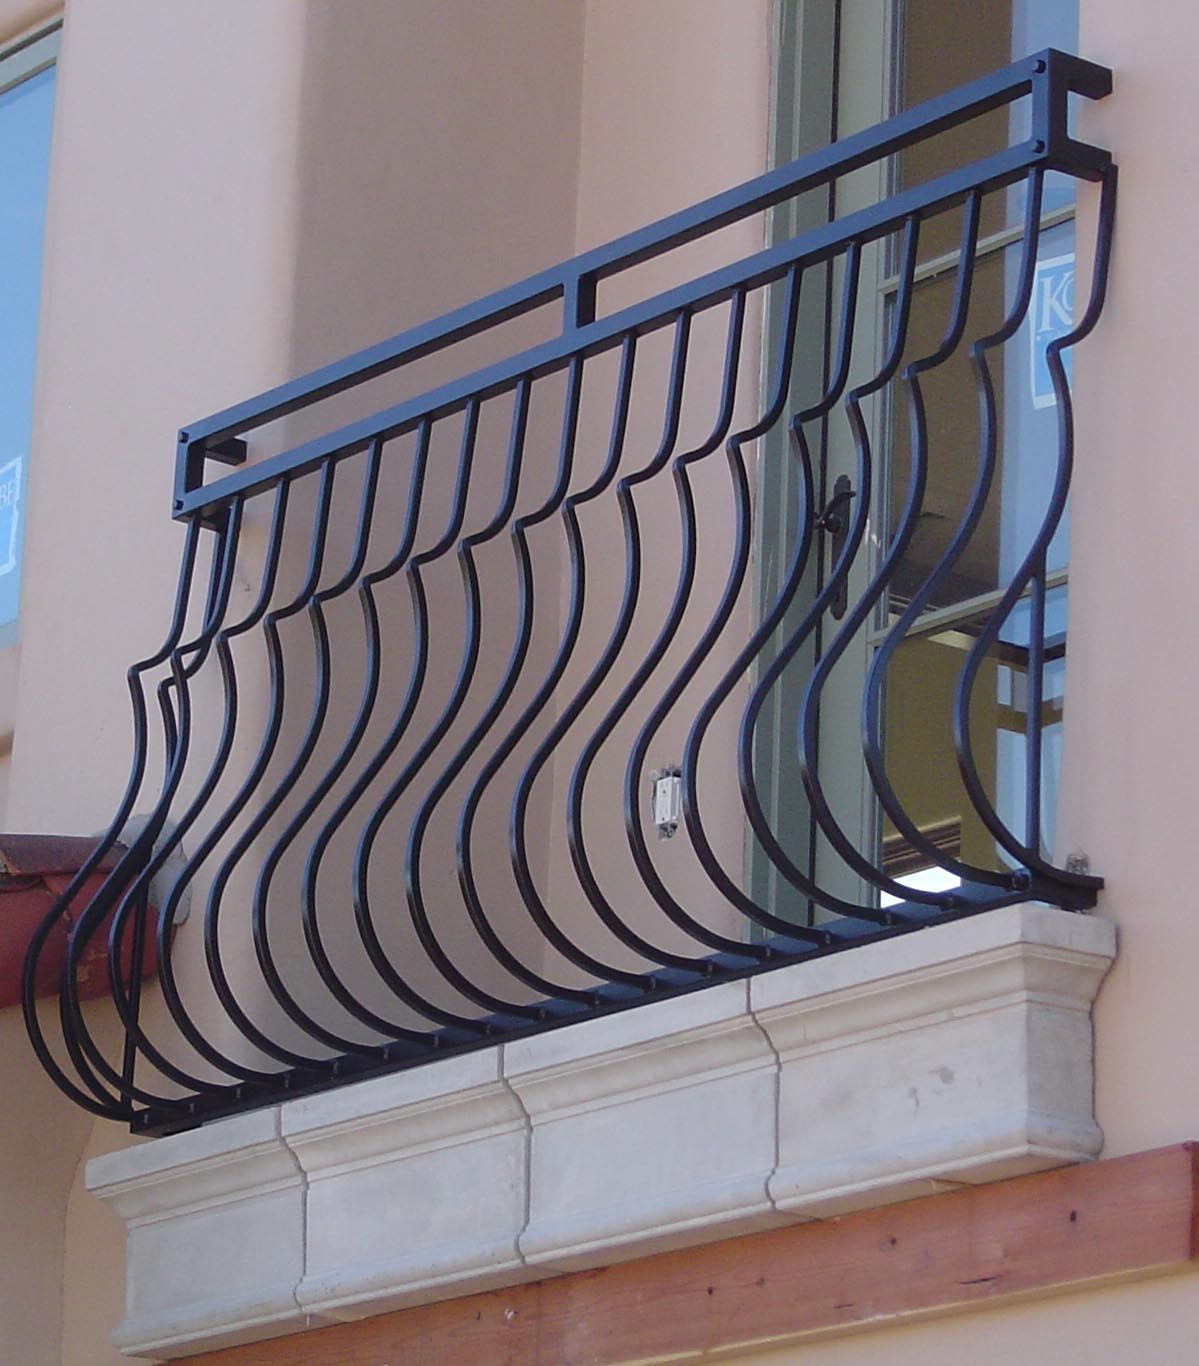 Curved balcony railing - black (With images) | Balcony ...